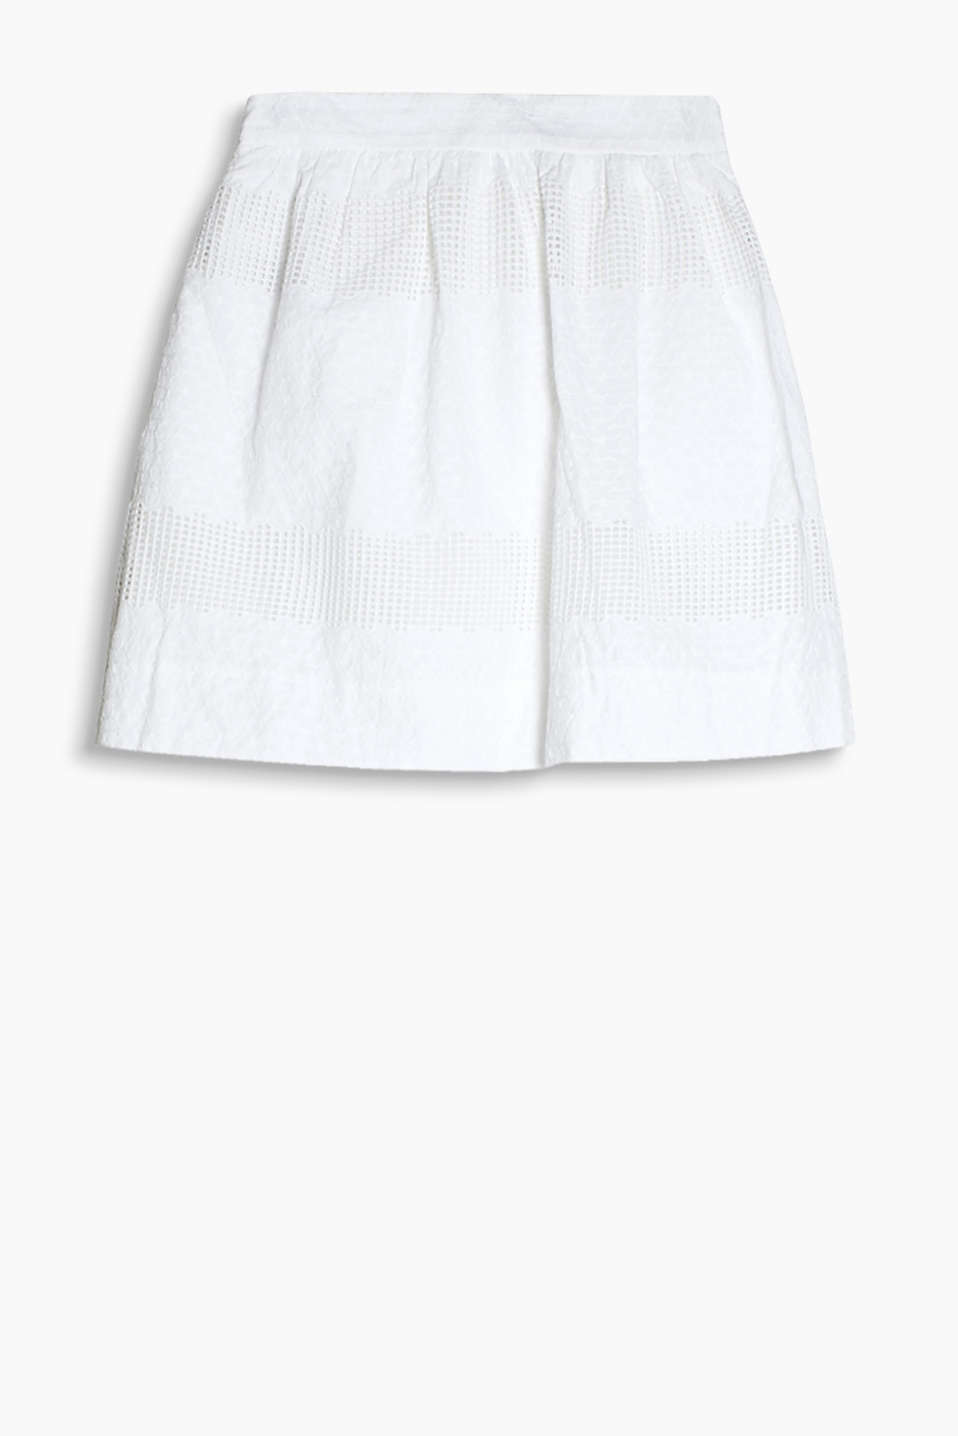 Summery cotton skirt with airy mesh lace and floral embroidery